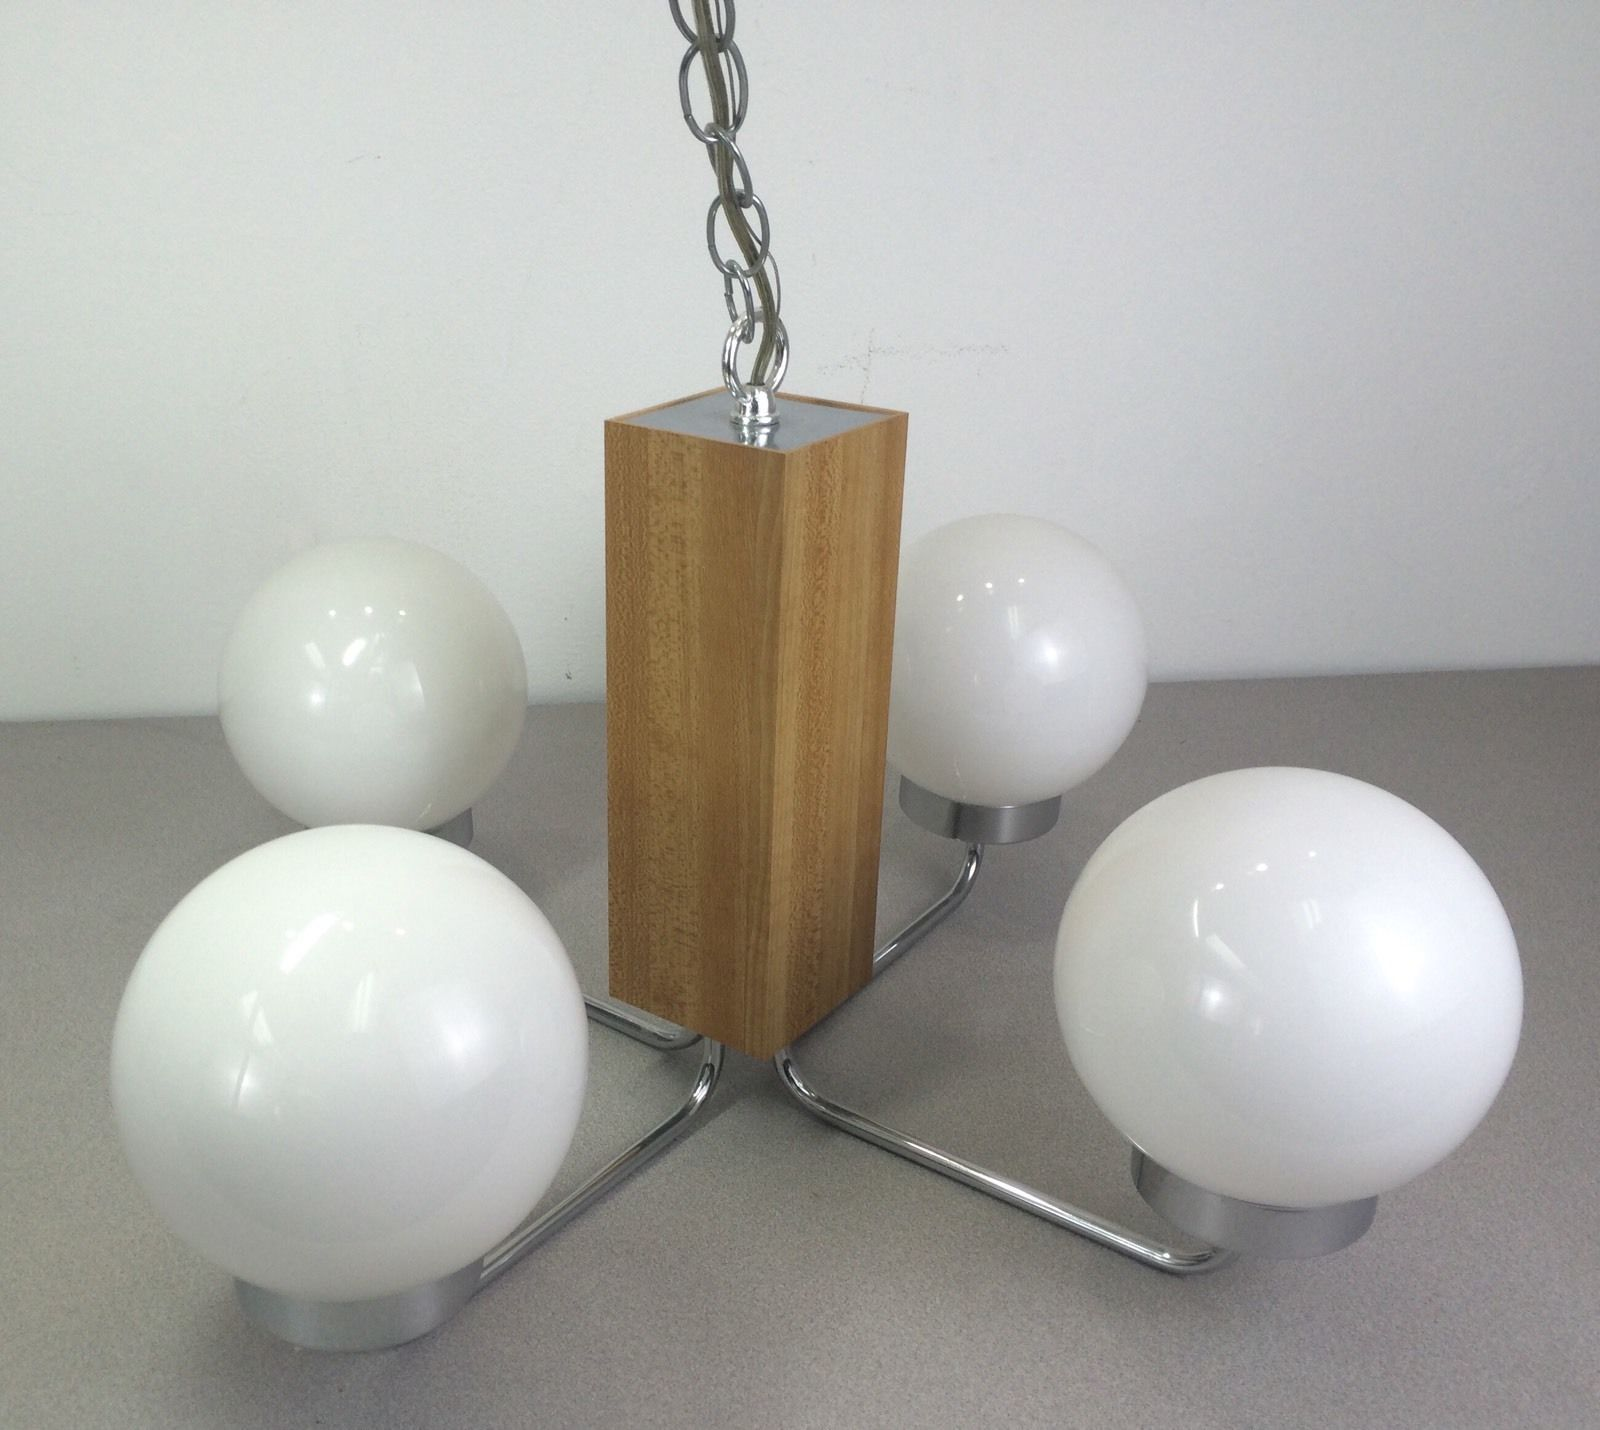 Mint Condition Vintage Mid Century Chrome 4 Globe Chandelier Hanging Lamp Light | eBay